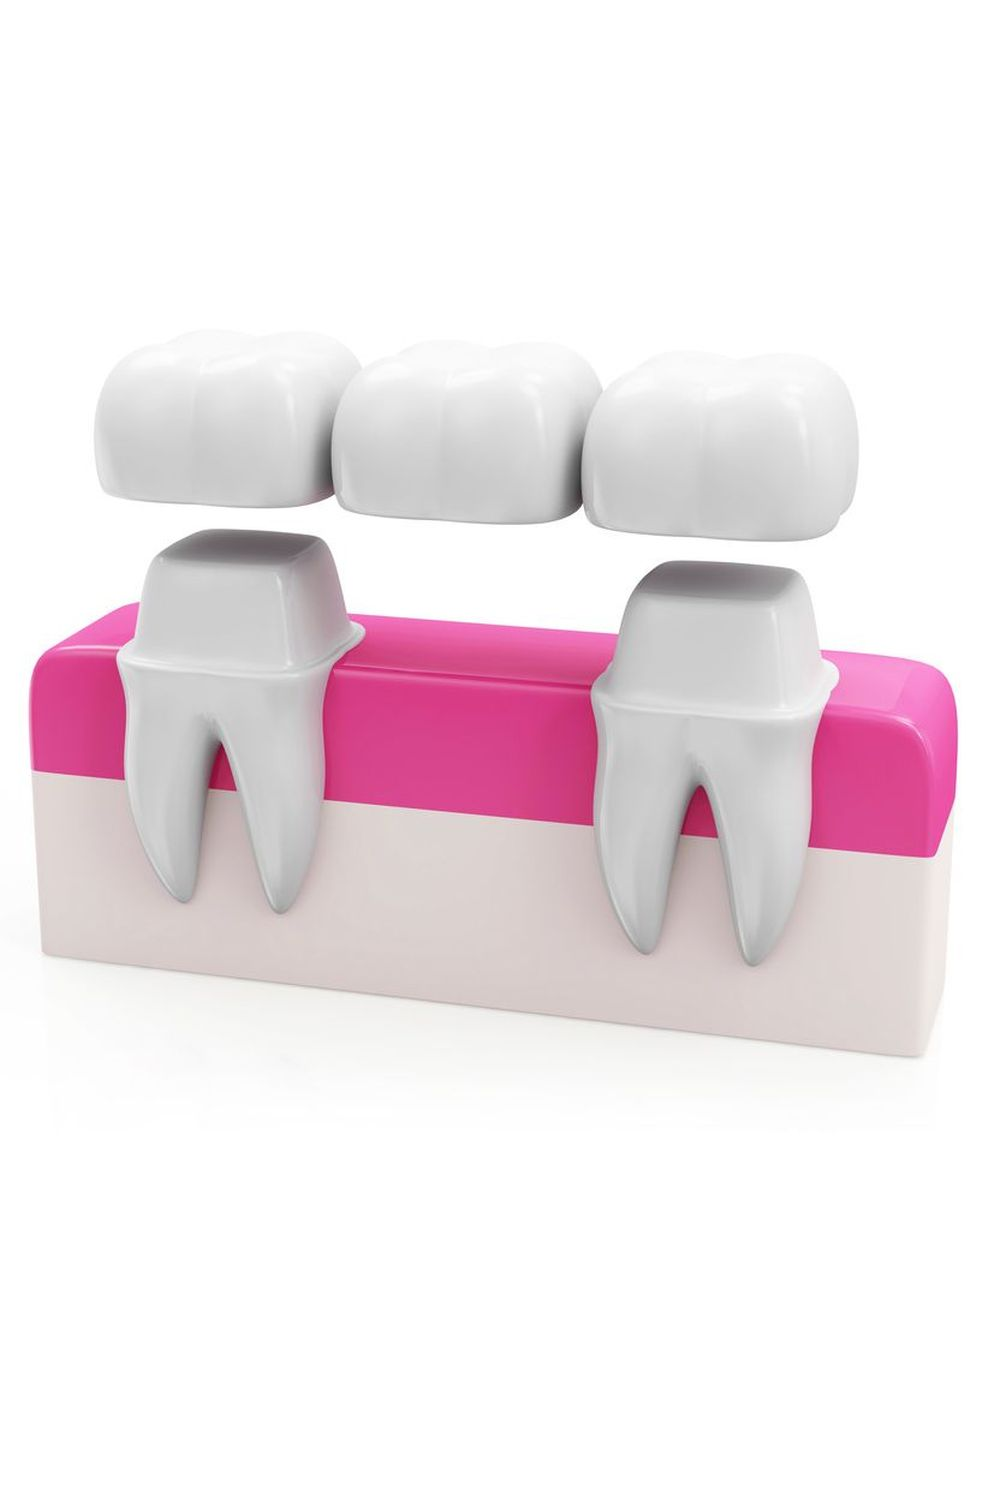 An illustrated example of a dental bridge